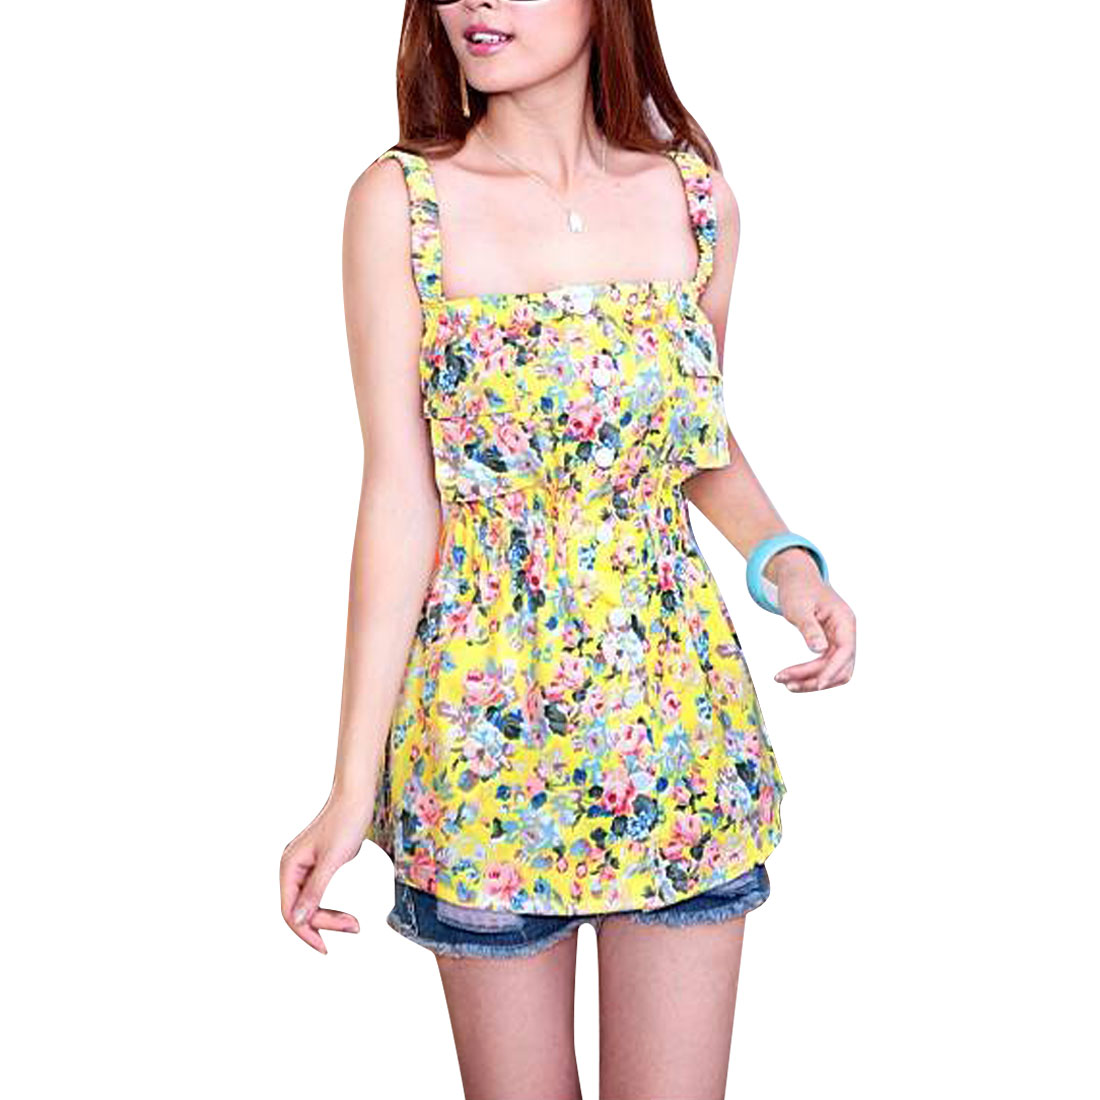 Women Elastic Straps Button Up Summer Tank Top Yellow Pink XS